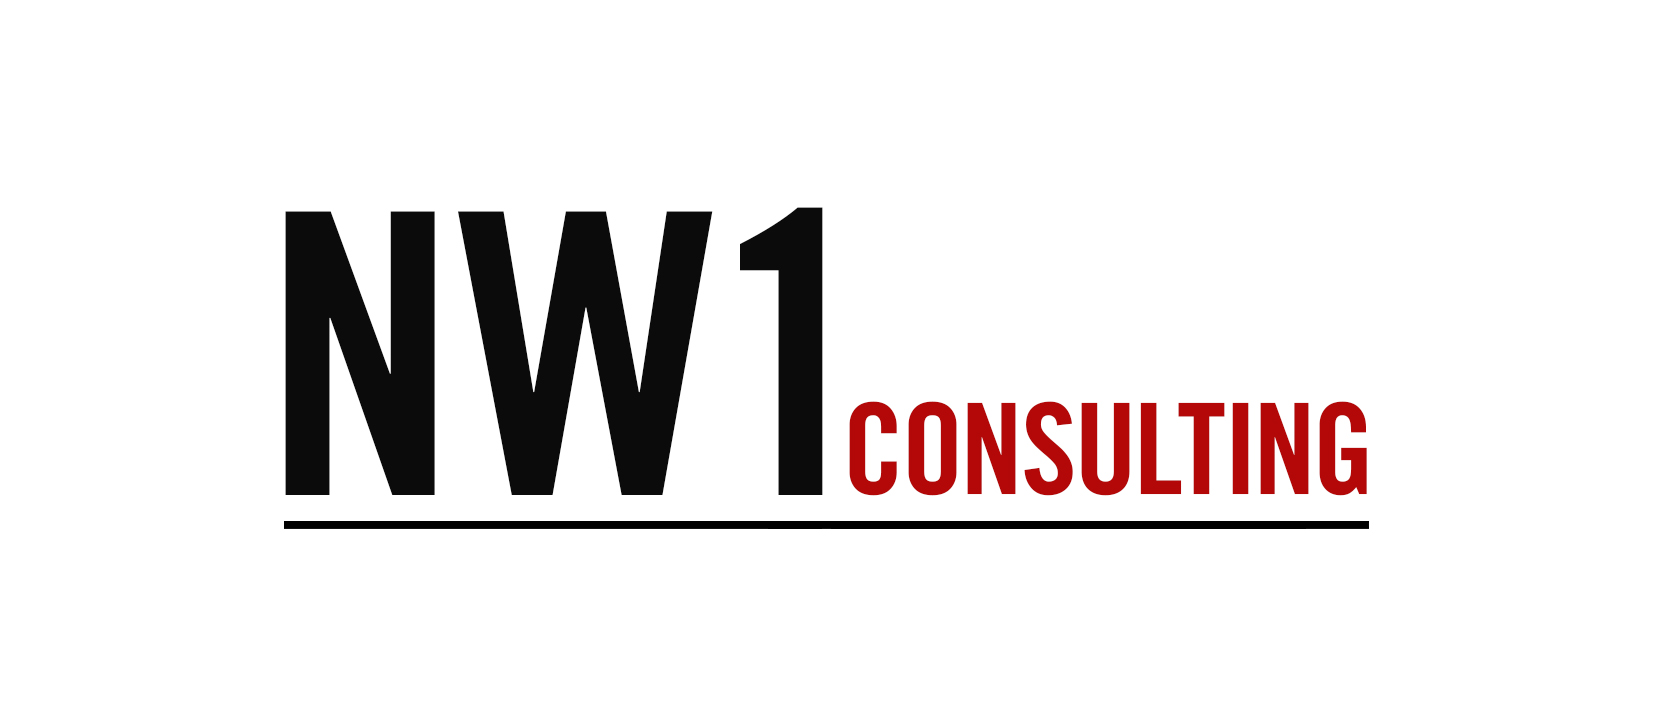 NW1 Consulting services cover a wide spectrum of digital management and consulting, from software development, broadcasting consulting, through connected technology.